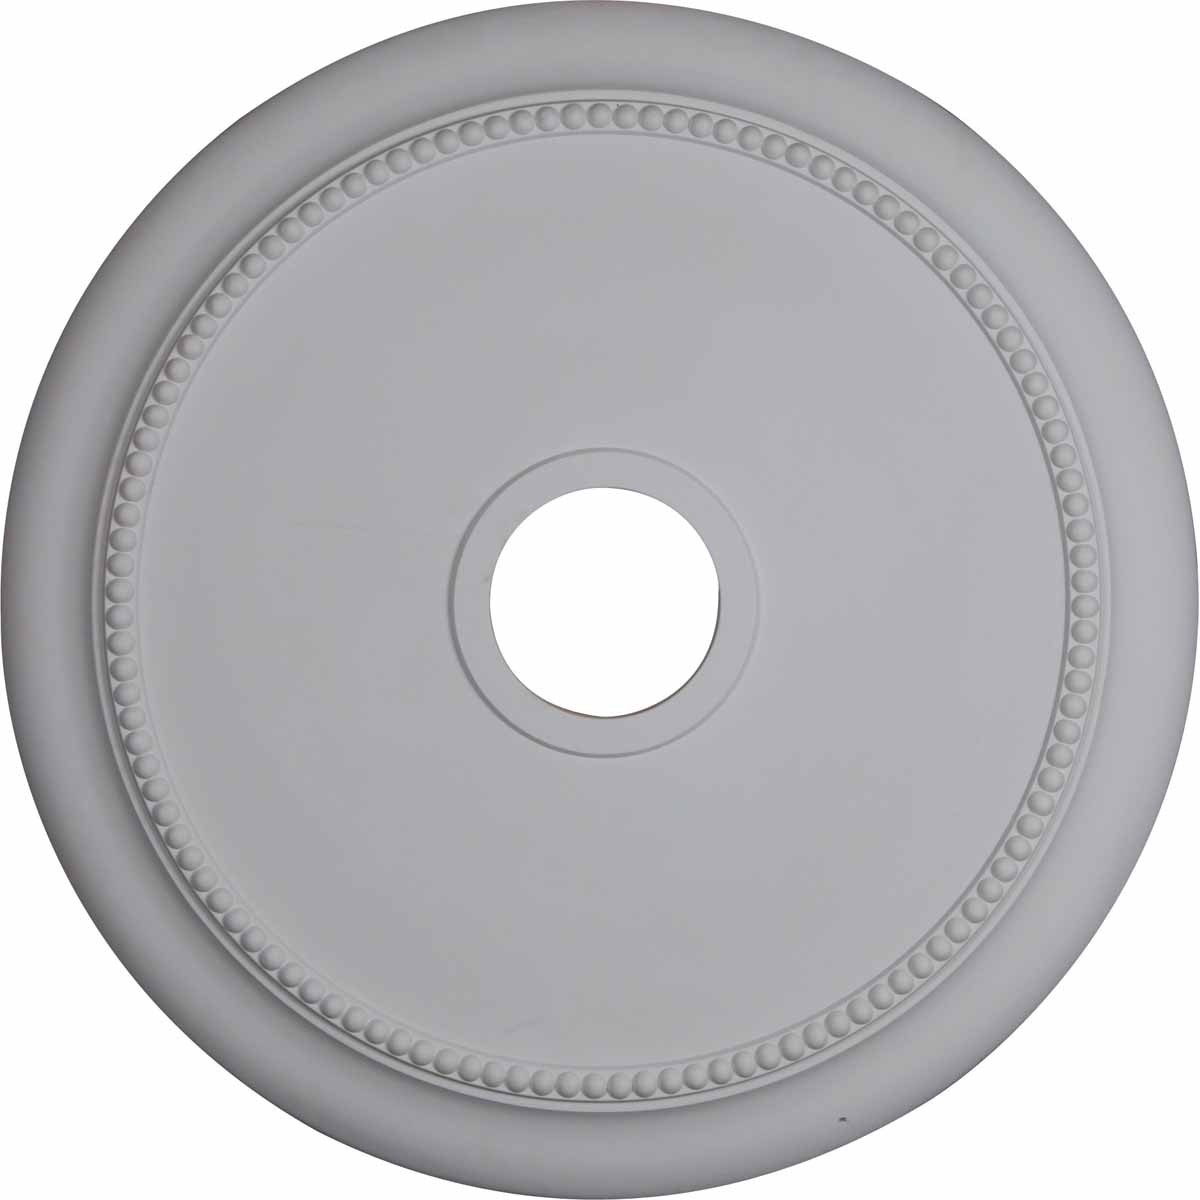 """EM-CM24CR - 24 1/8""""OD x 4 3/8""""ID x 2 1/4""""P Crendon Ceiling Medallion (Fits Canopies up to 4 3/8"""")"""